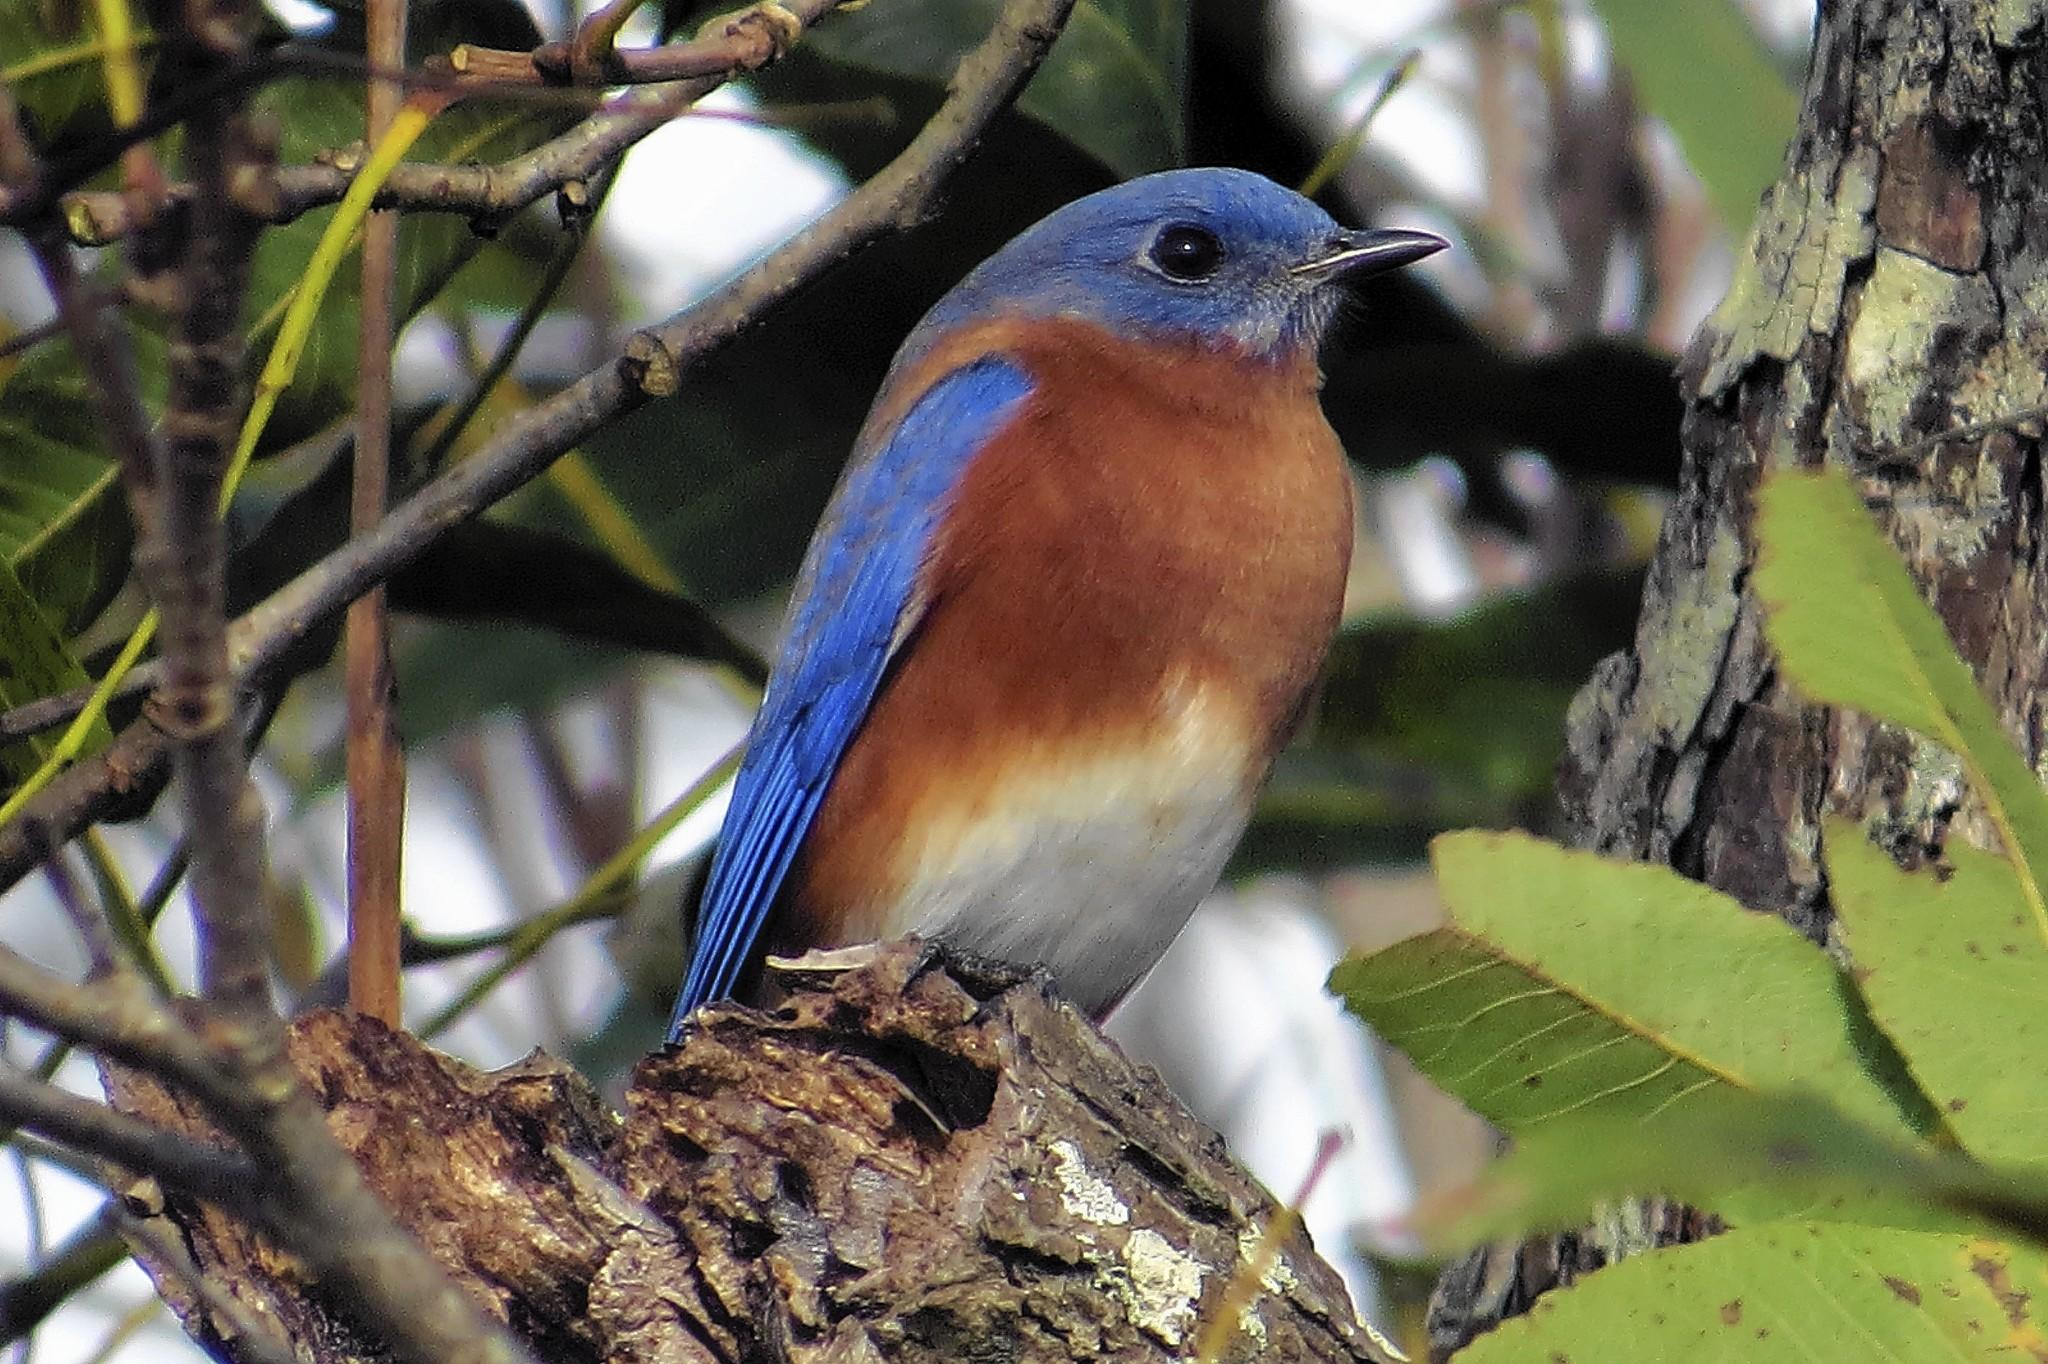 Bluebirds have a tough life, but their beautiful colors make them a joy for birdwatchers.